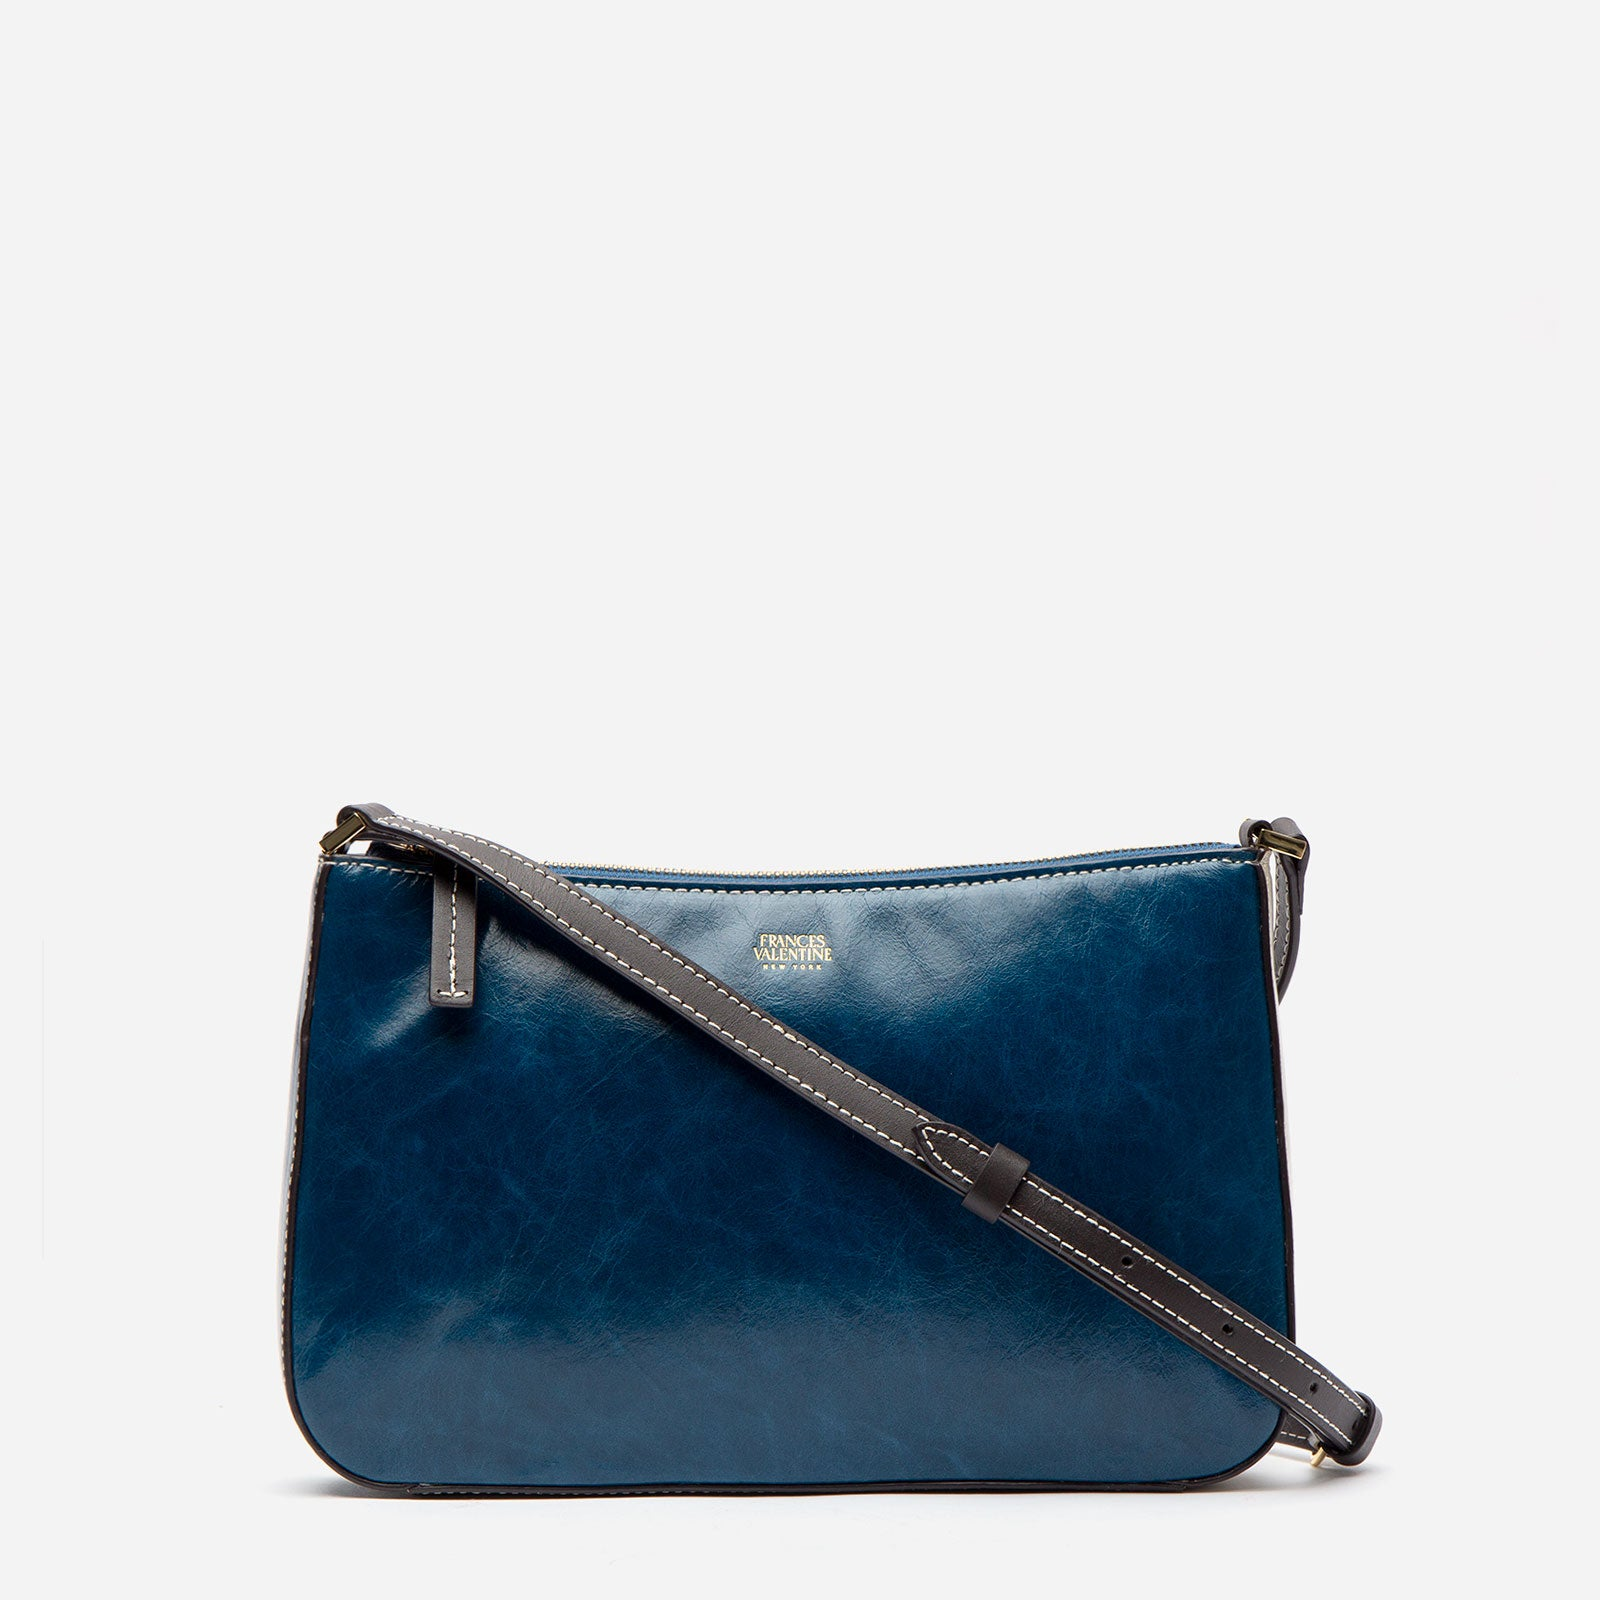 Poppy Crossbody Naplak Leather Navy Oyster - Frances Valentine